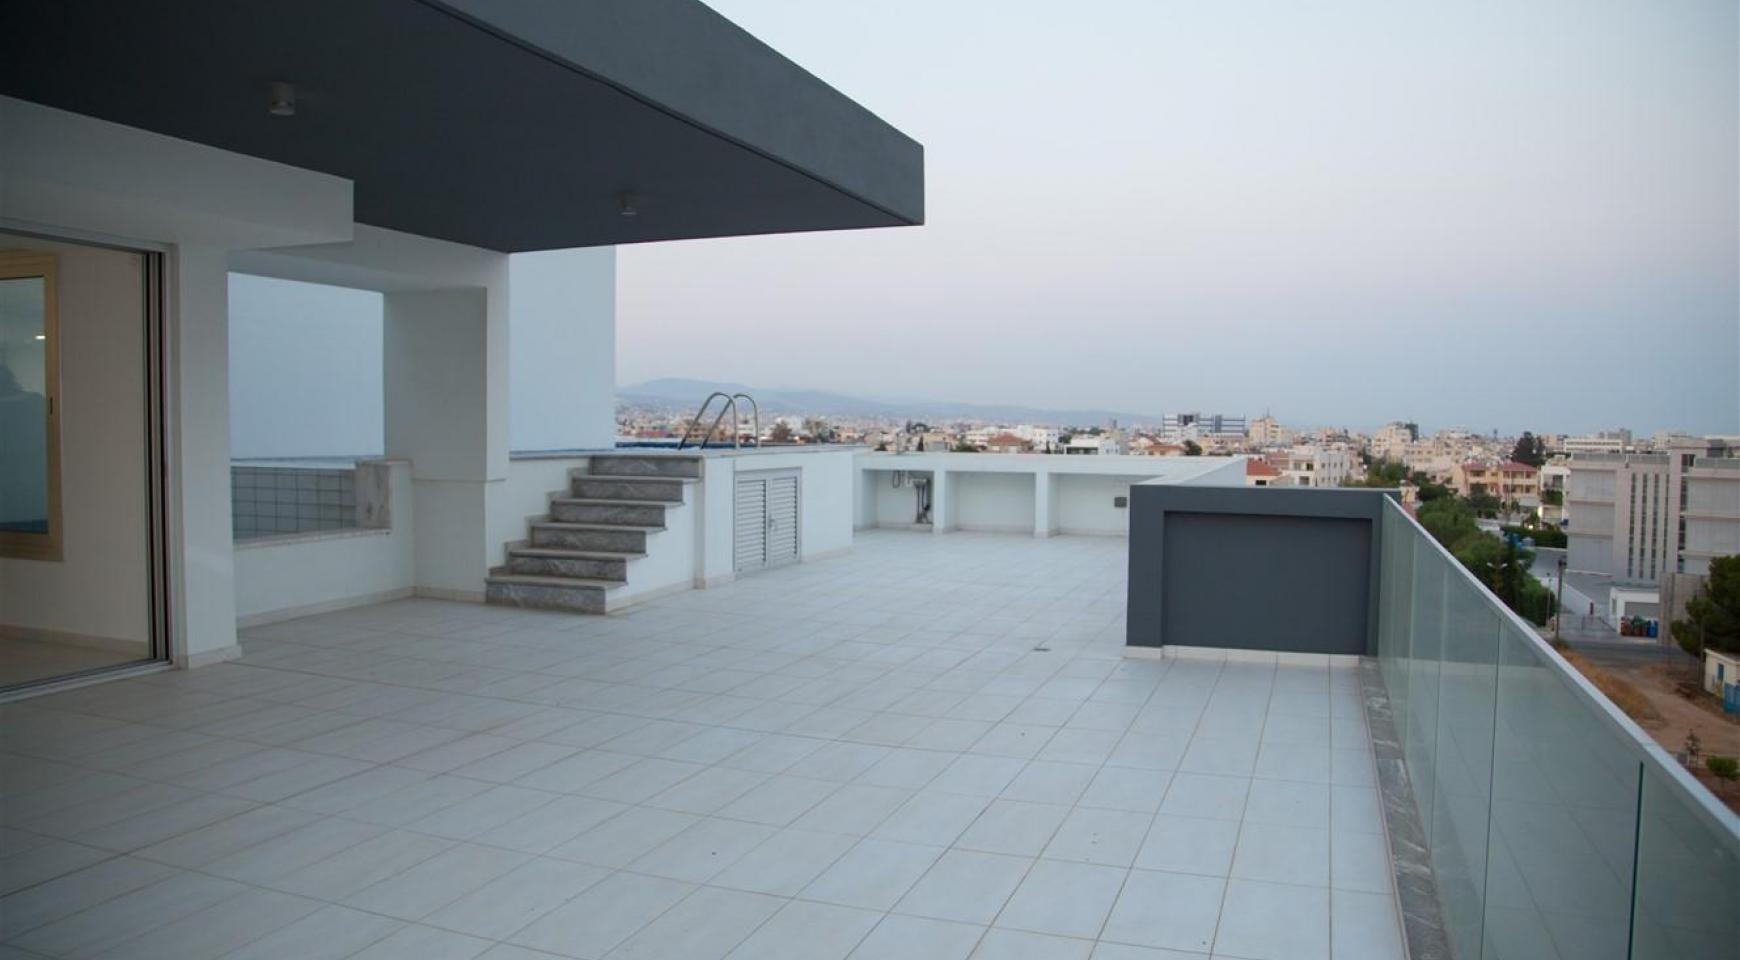 Elite 3 Bedroom Penthouse with Private Swimming Pool on the Roof - 25